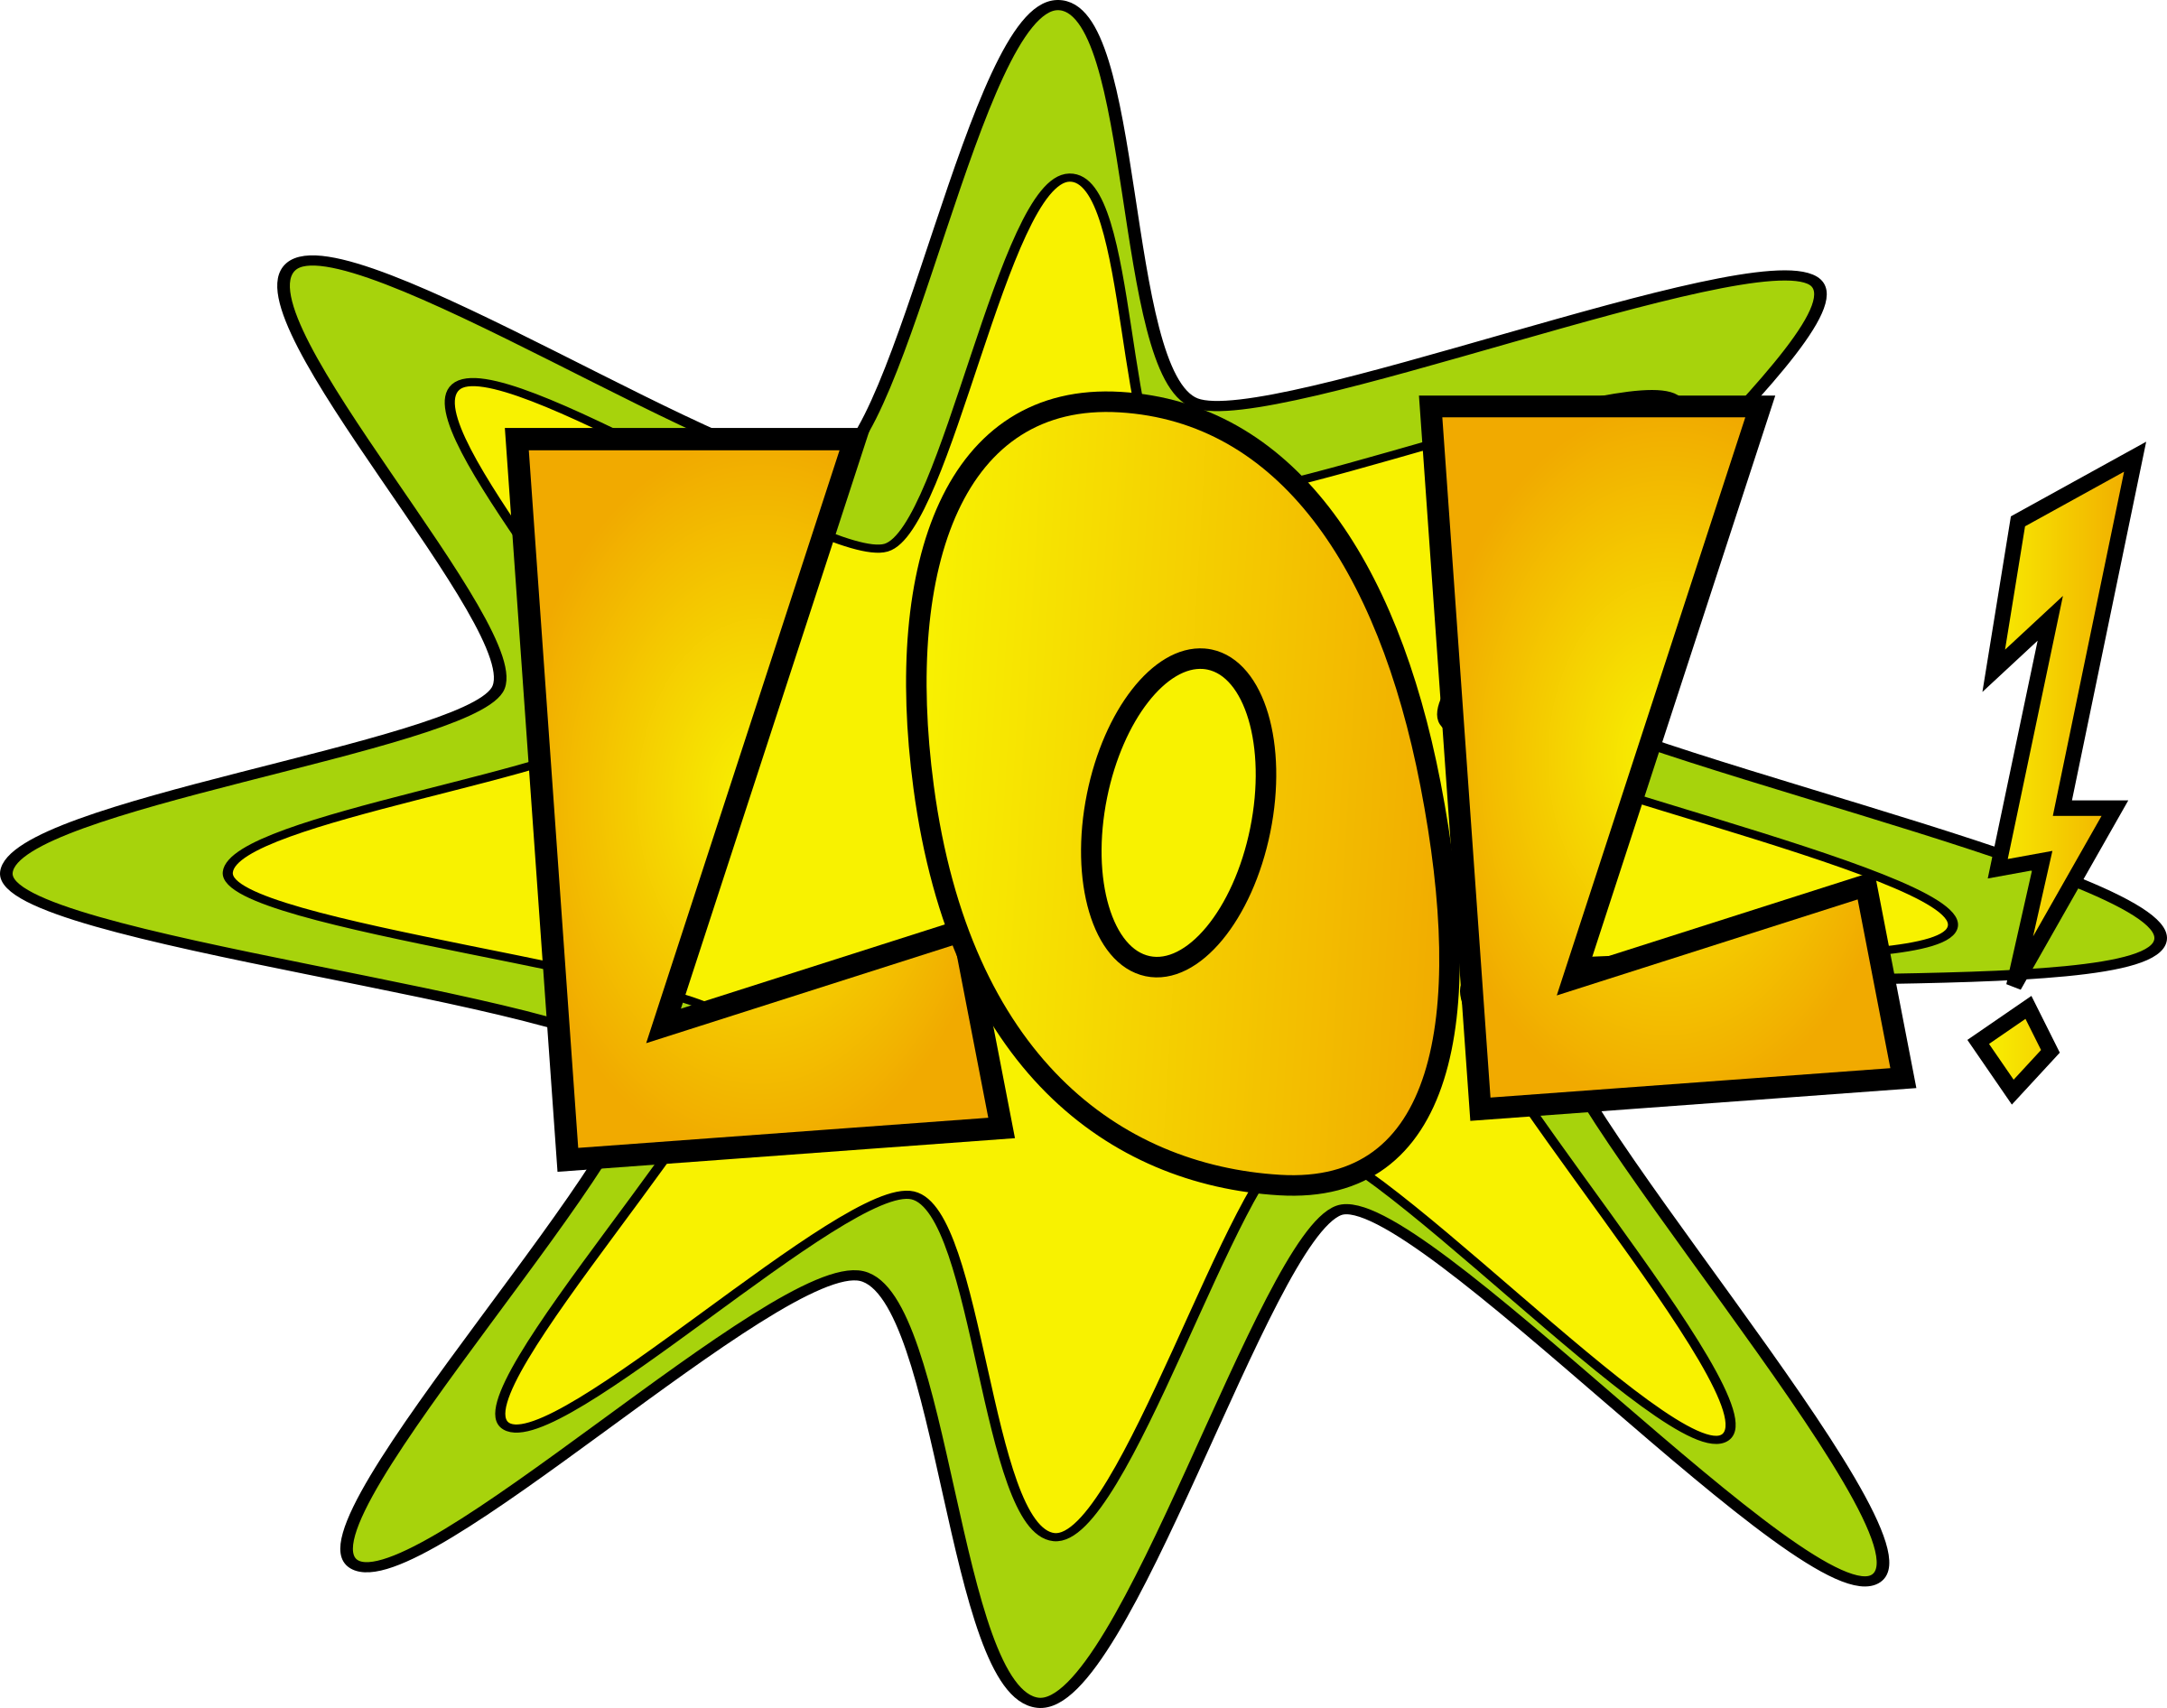 LOL! Laughing Out Loud - LOL Clipart